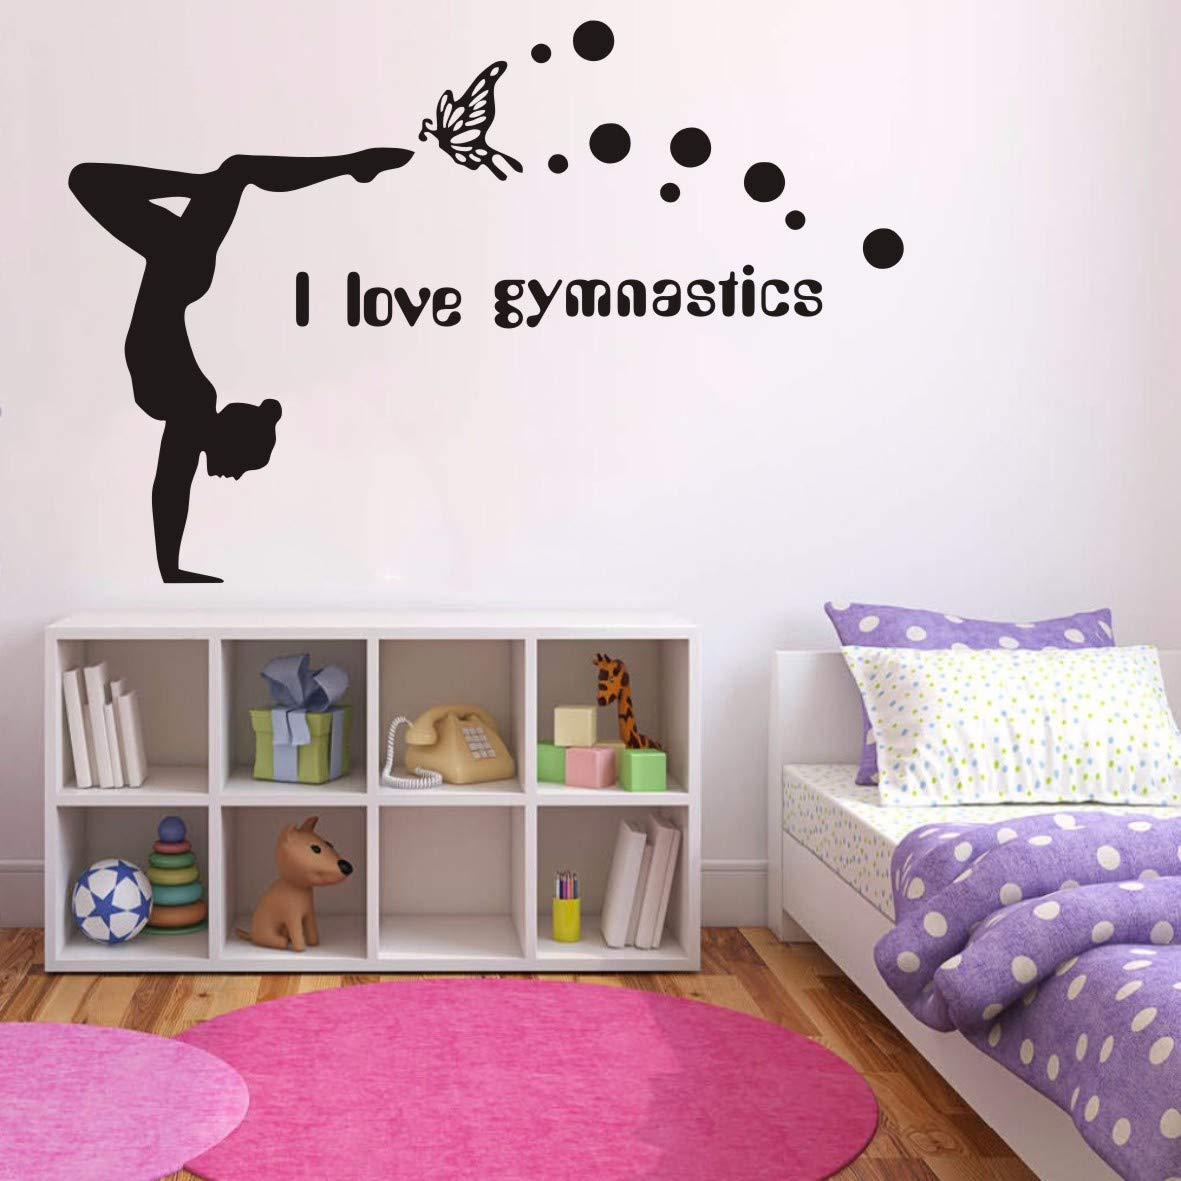 Girl Room Bedroom Wall Decor I Love Gymnastics Vinyl Wall Stickers Decal Girls Dance Gym Decor for Kids Room Nursery Bedroom Art Girl Bedroom Wall Decor Mural Yoga Stickers J860 (Black finsh110x65cm)